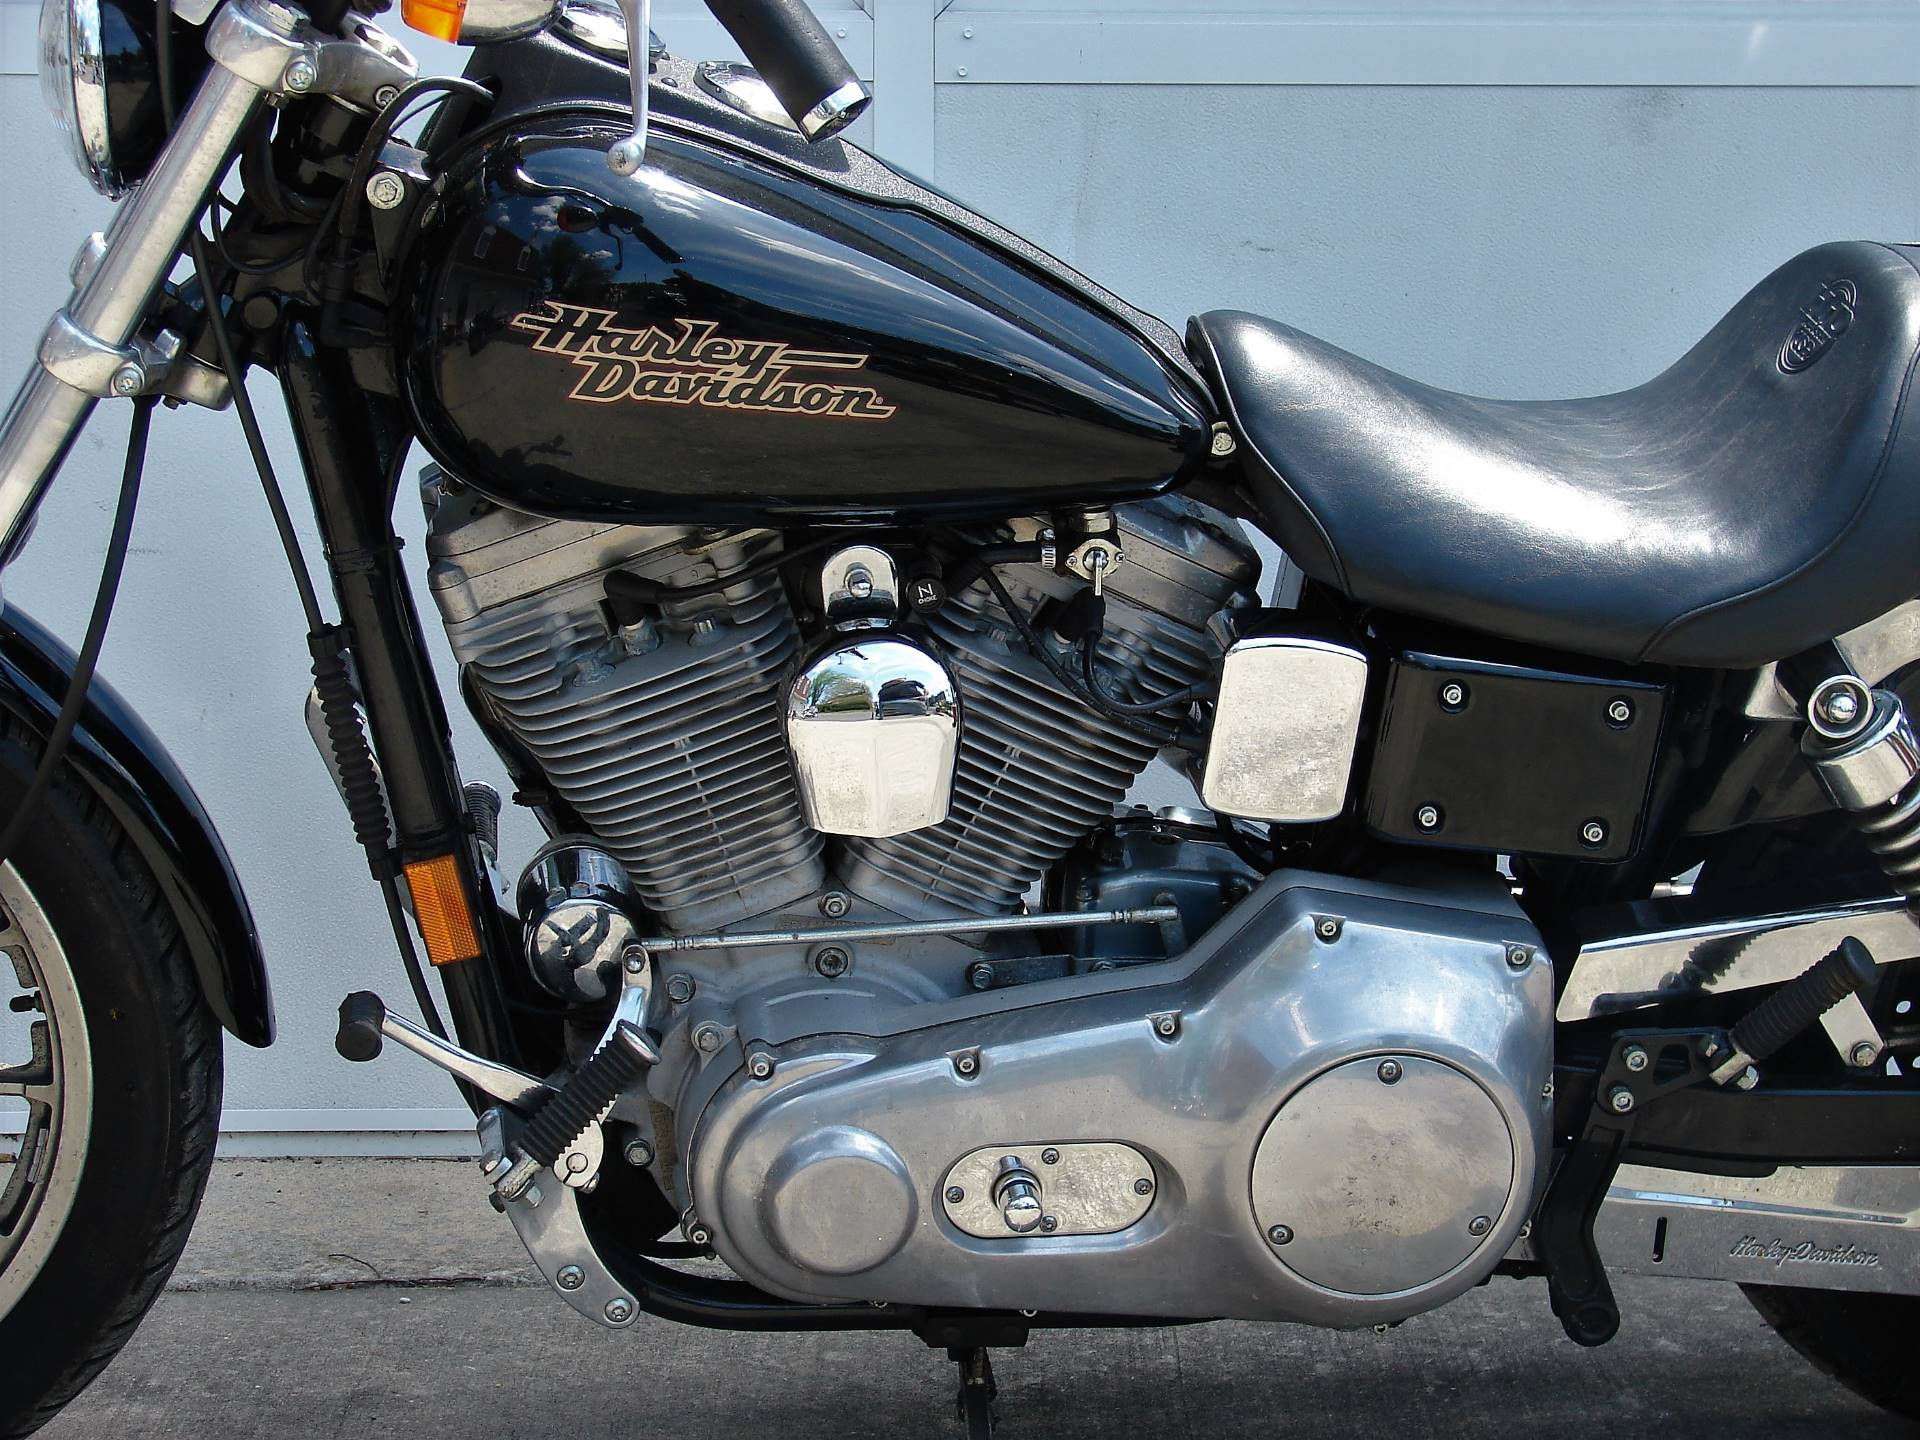 1998 Harley-Davidson Dyna Super Glide  (Black)  w/ Low Miles! in Williamstown, New Jersey - Photo 7